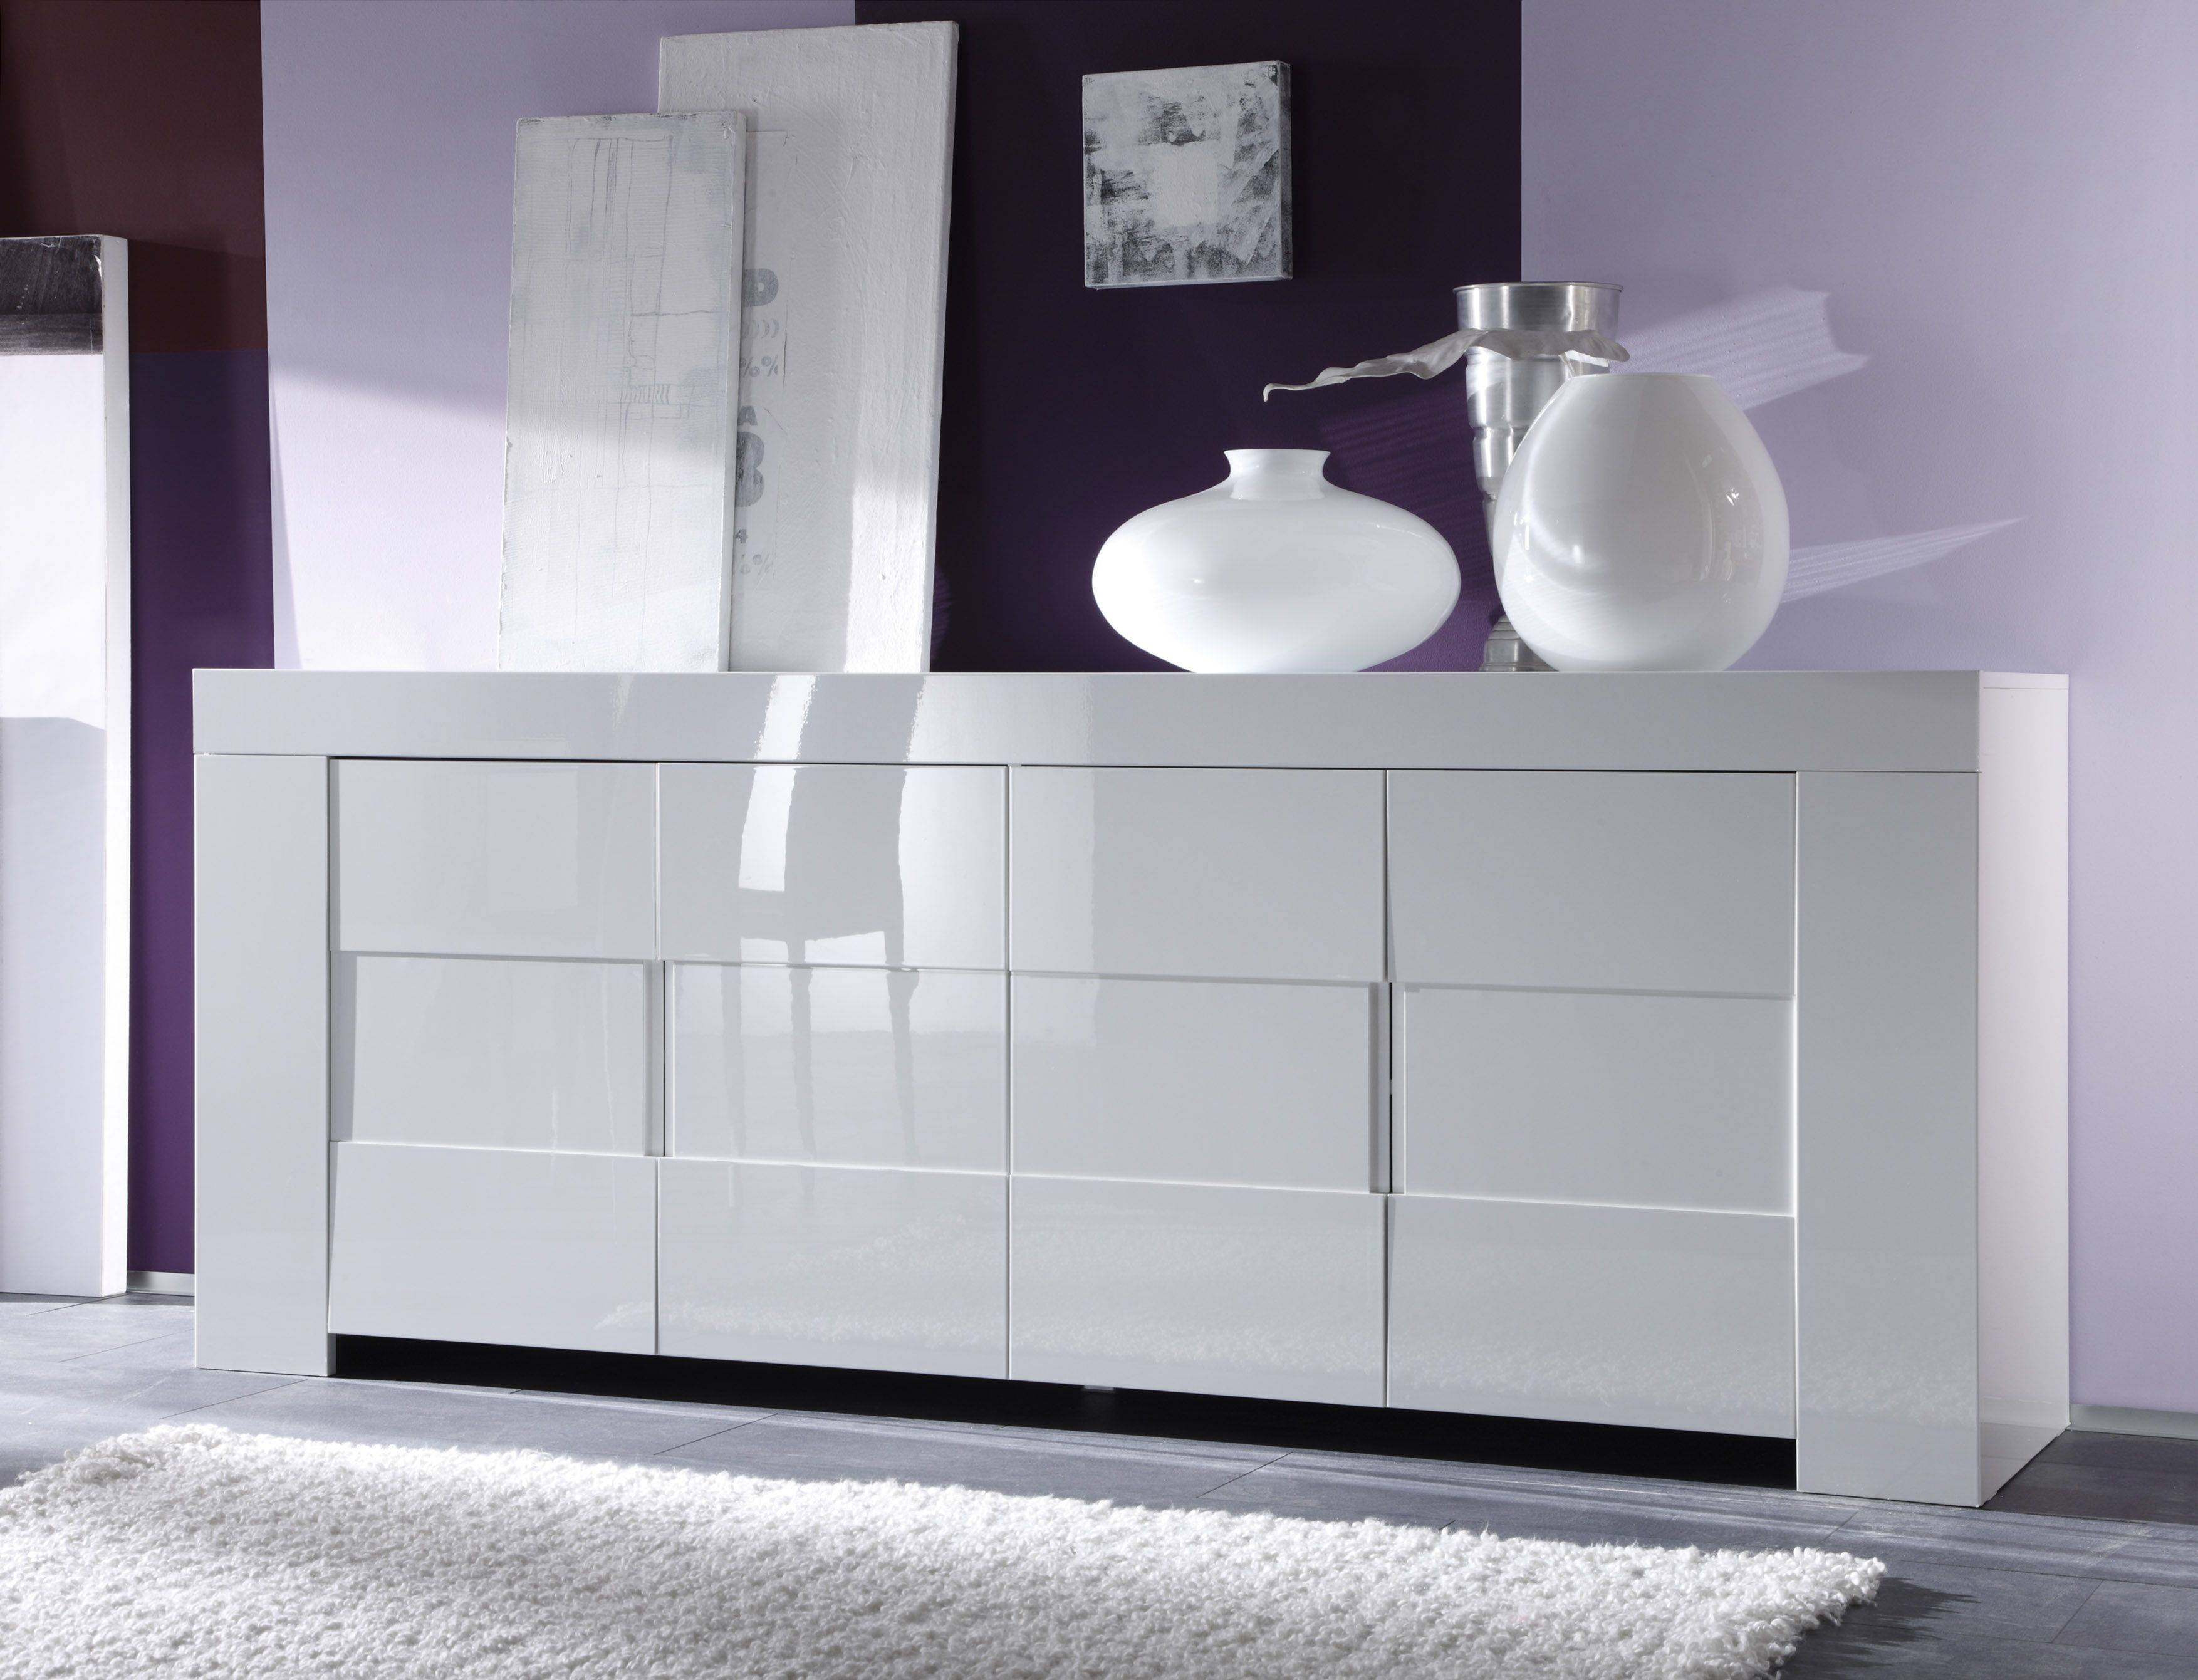 Sideboard Fr Kche. Fabulous Siematic Kitchen Sideboard From The ...